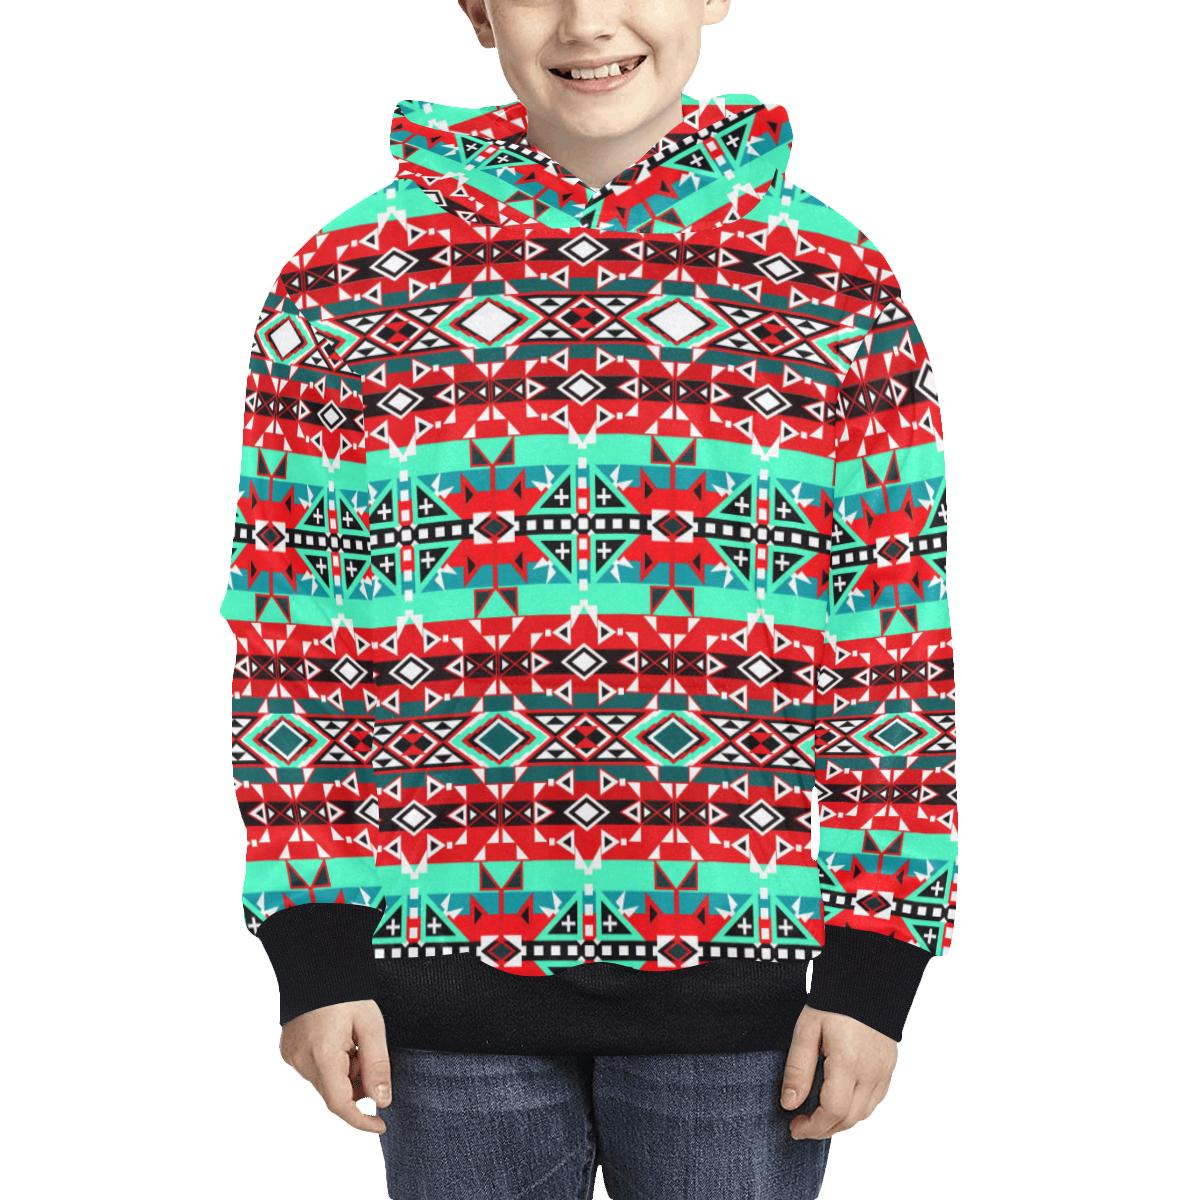 After the Southwest Rain Kids' All Over Print Hoodie (Model H38) Kids' AOP Hoodie (H38) e-joyer